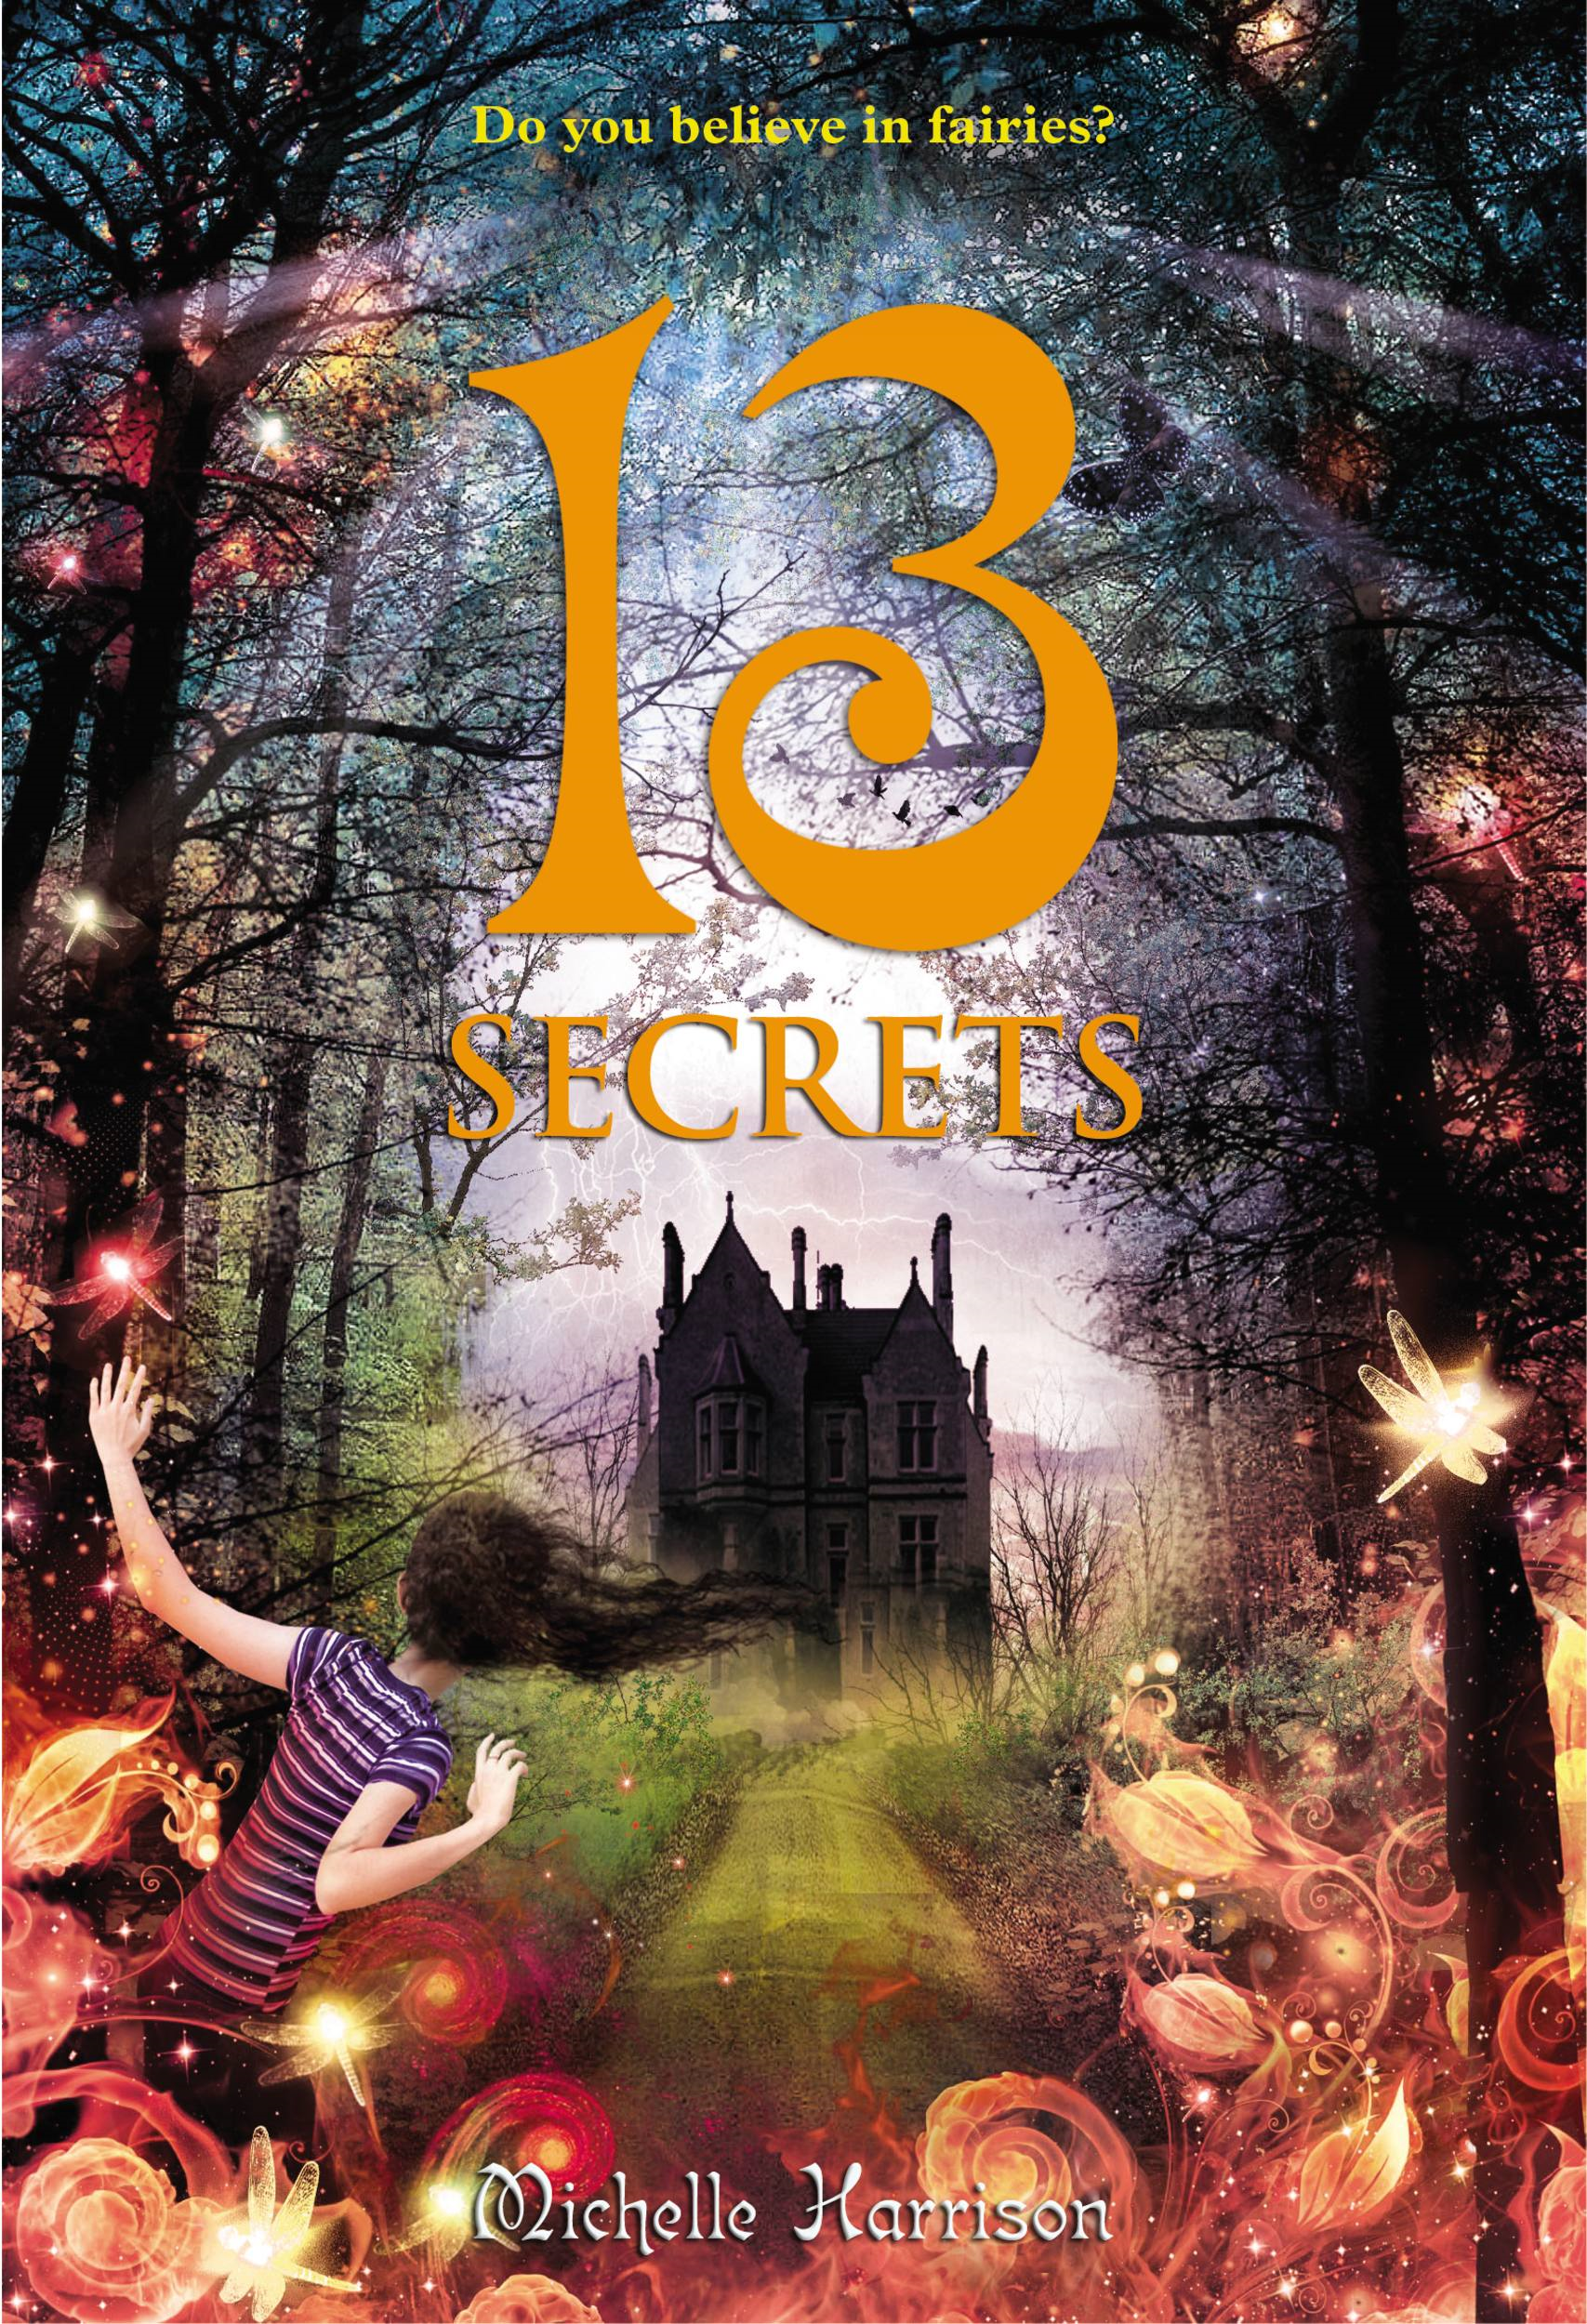 13 Secrets By: Michelle Harrison